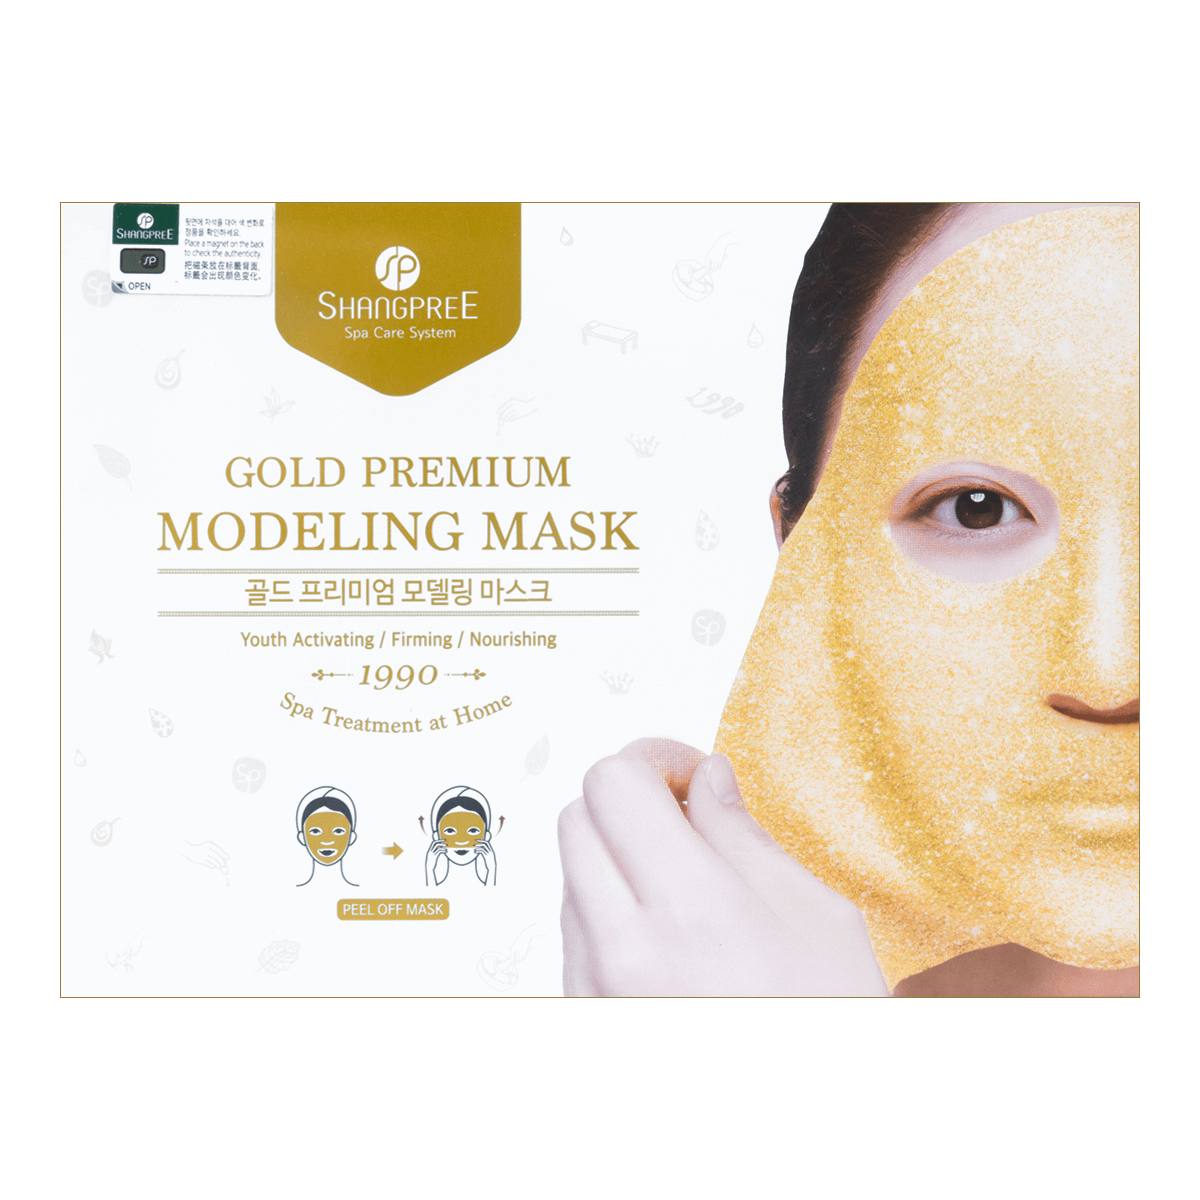 SHANGPREE Gold Premium Modeling Mask 5 Pieces